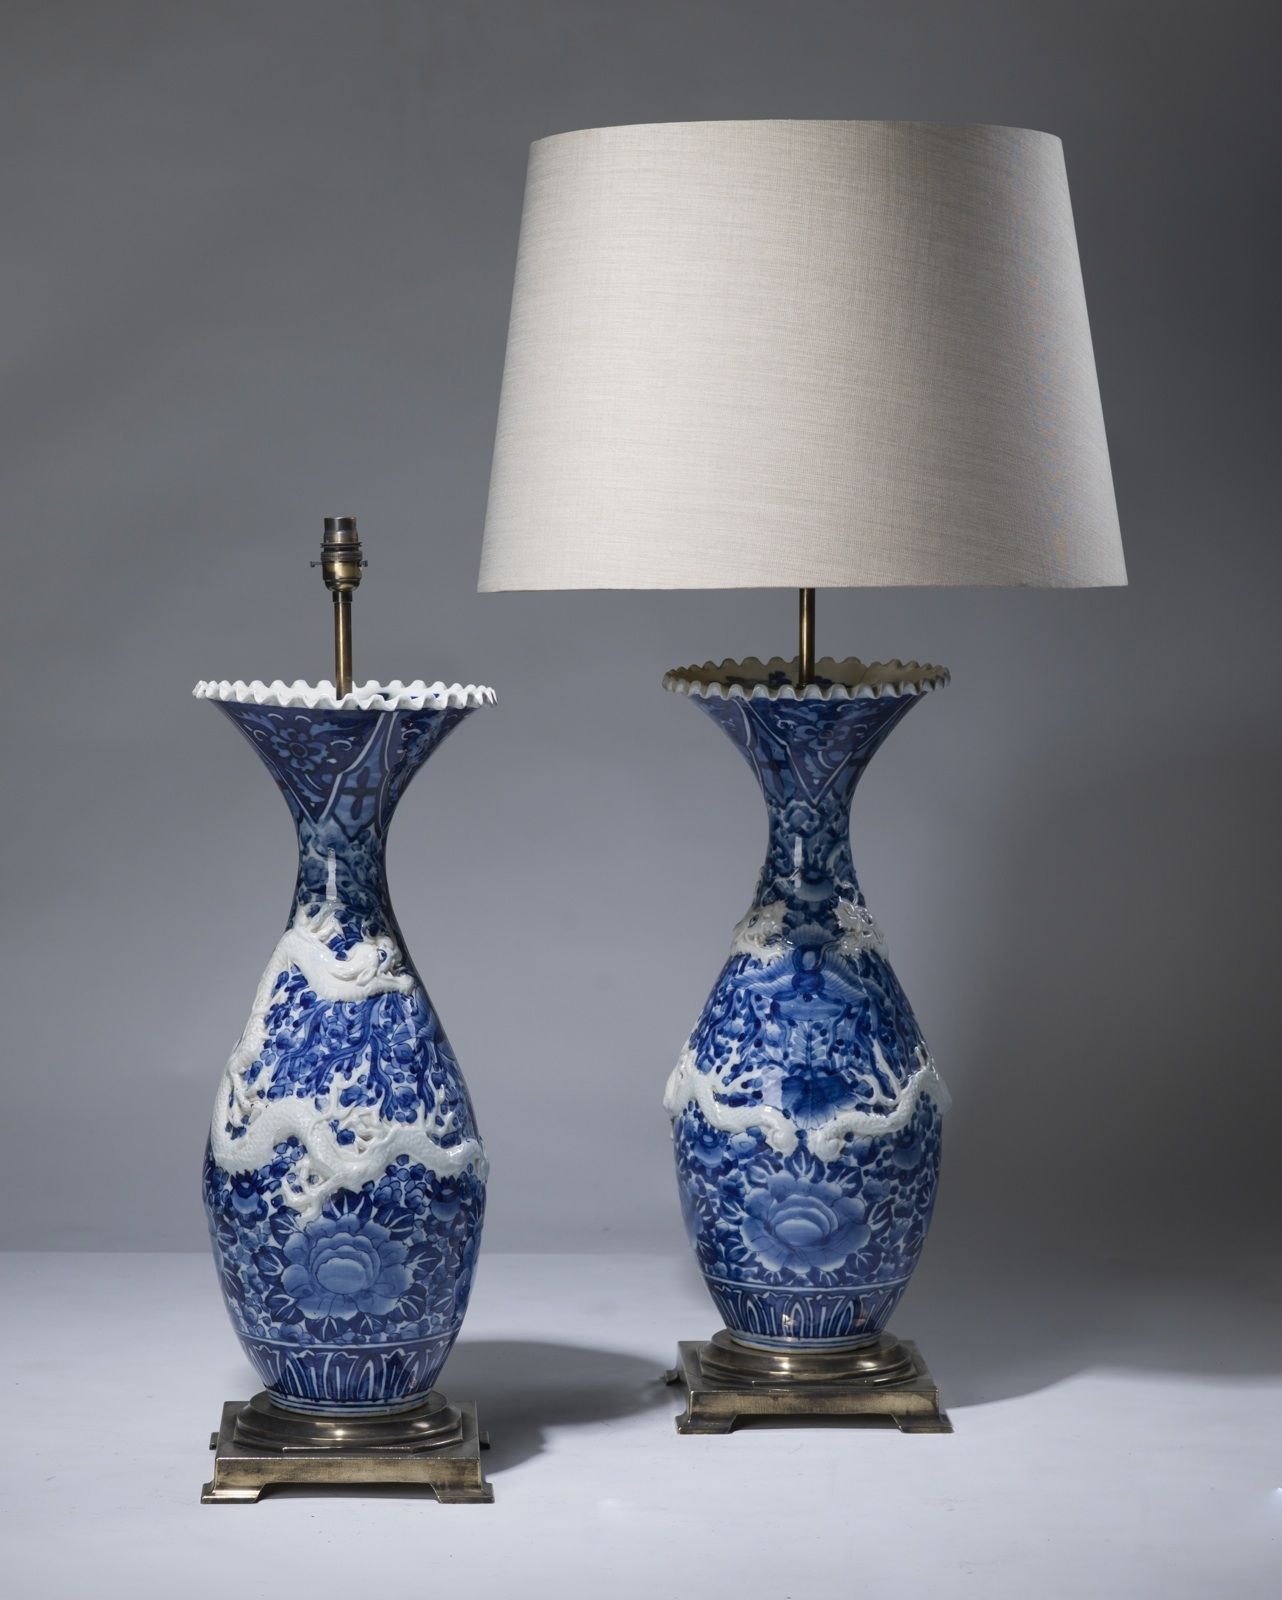 Pair Of Large Blue U0026 White Antique Ceramic Lamps On Distressed Brass Bases